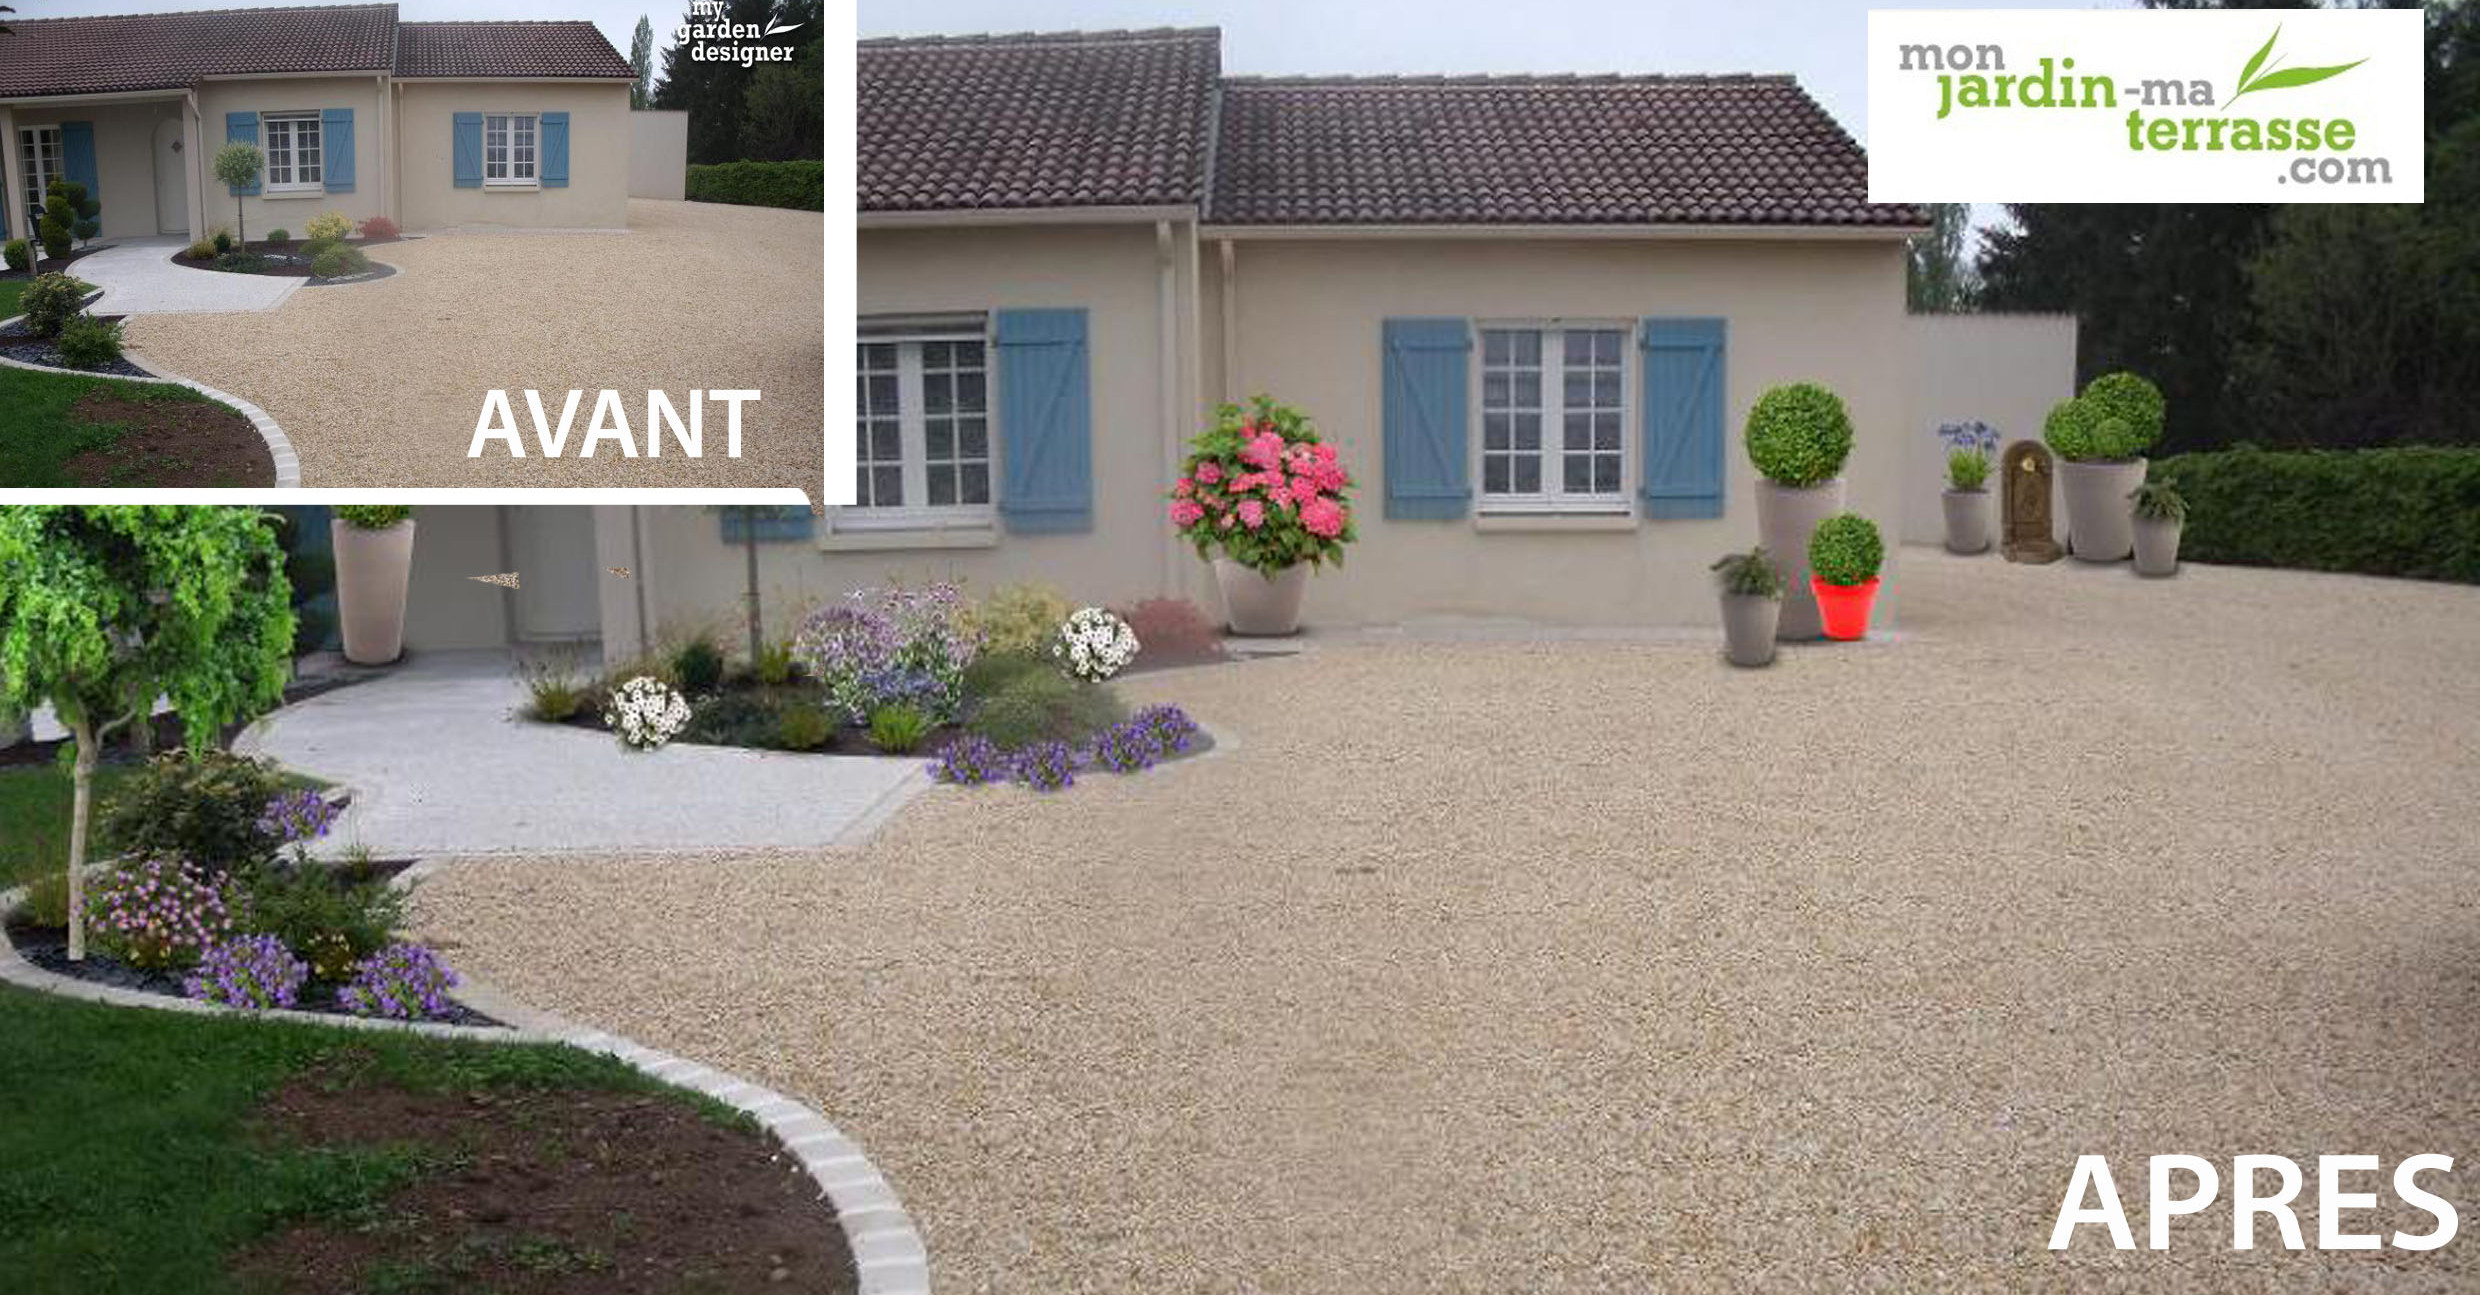 idee damenagement dune entree de maison monjardin With exceptional idee amenagement terrasse exterieure 9 comment amenager lentree exterieure dune maison